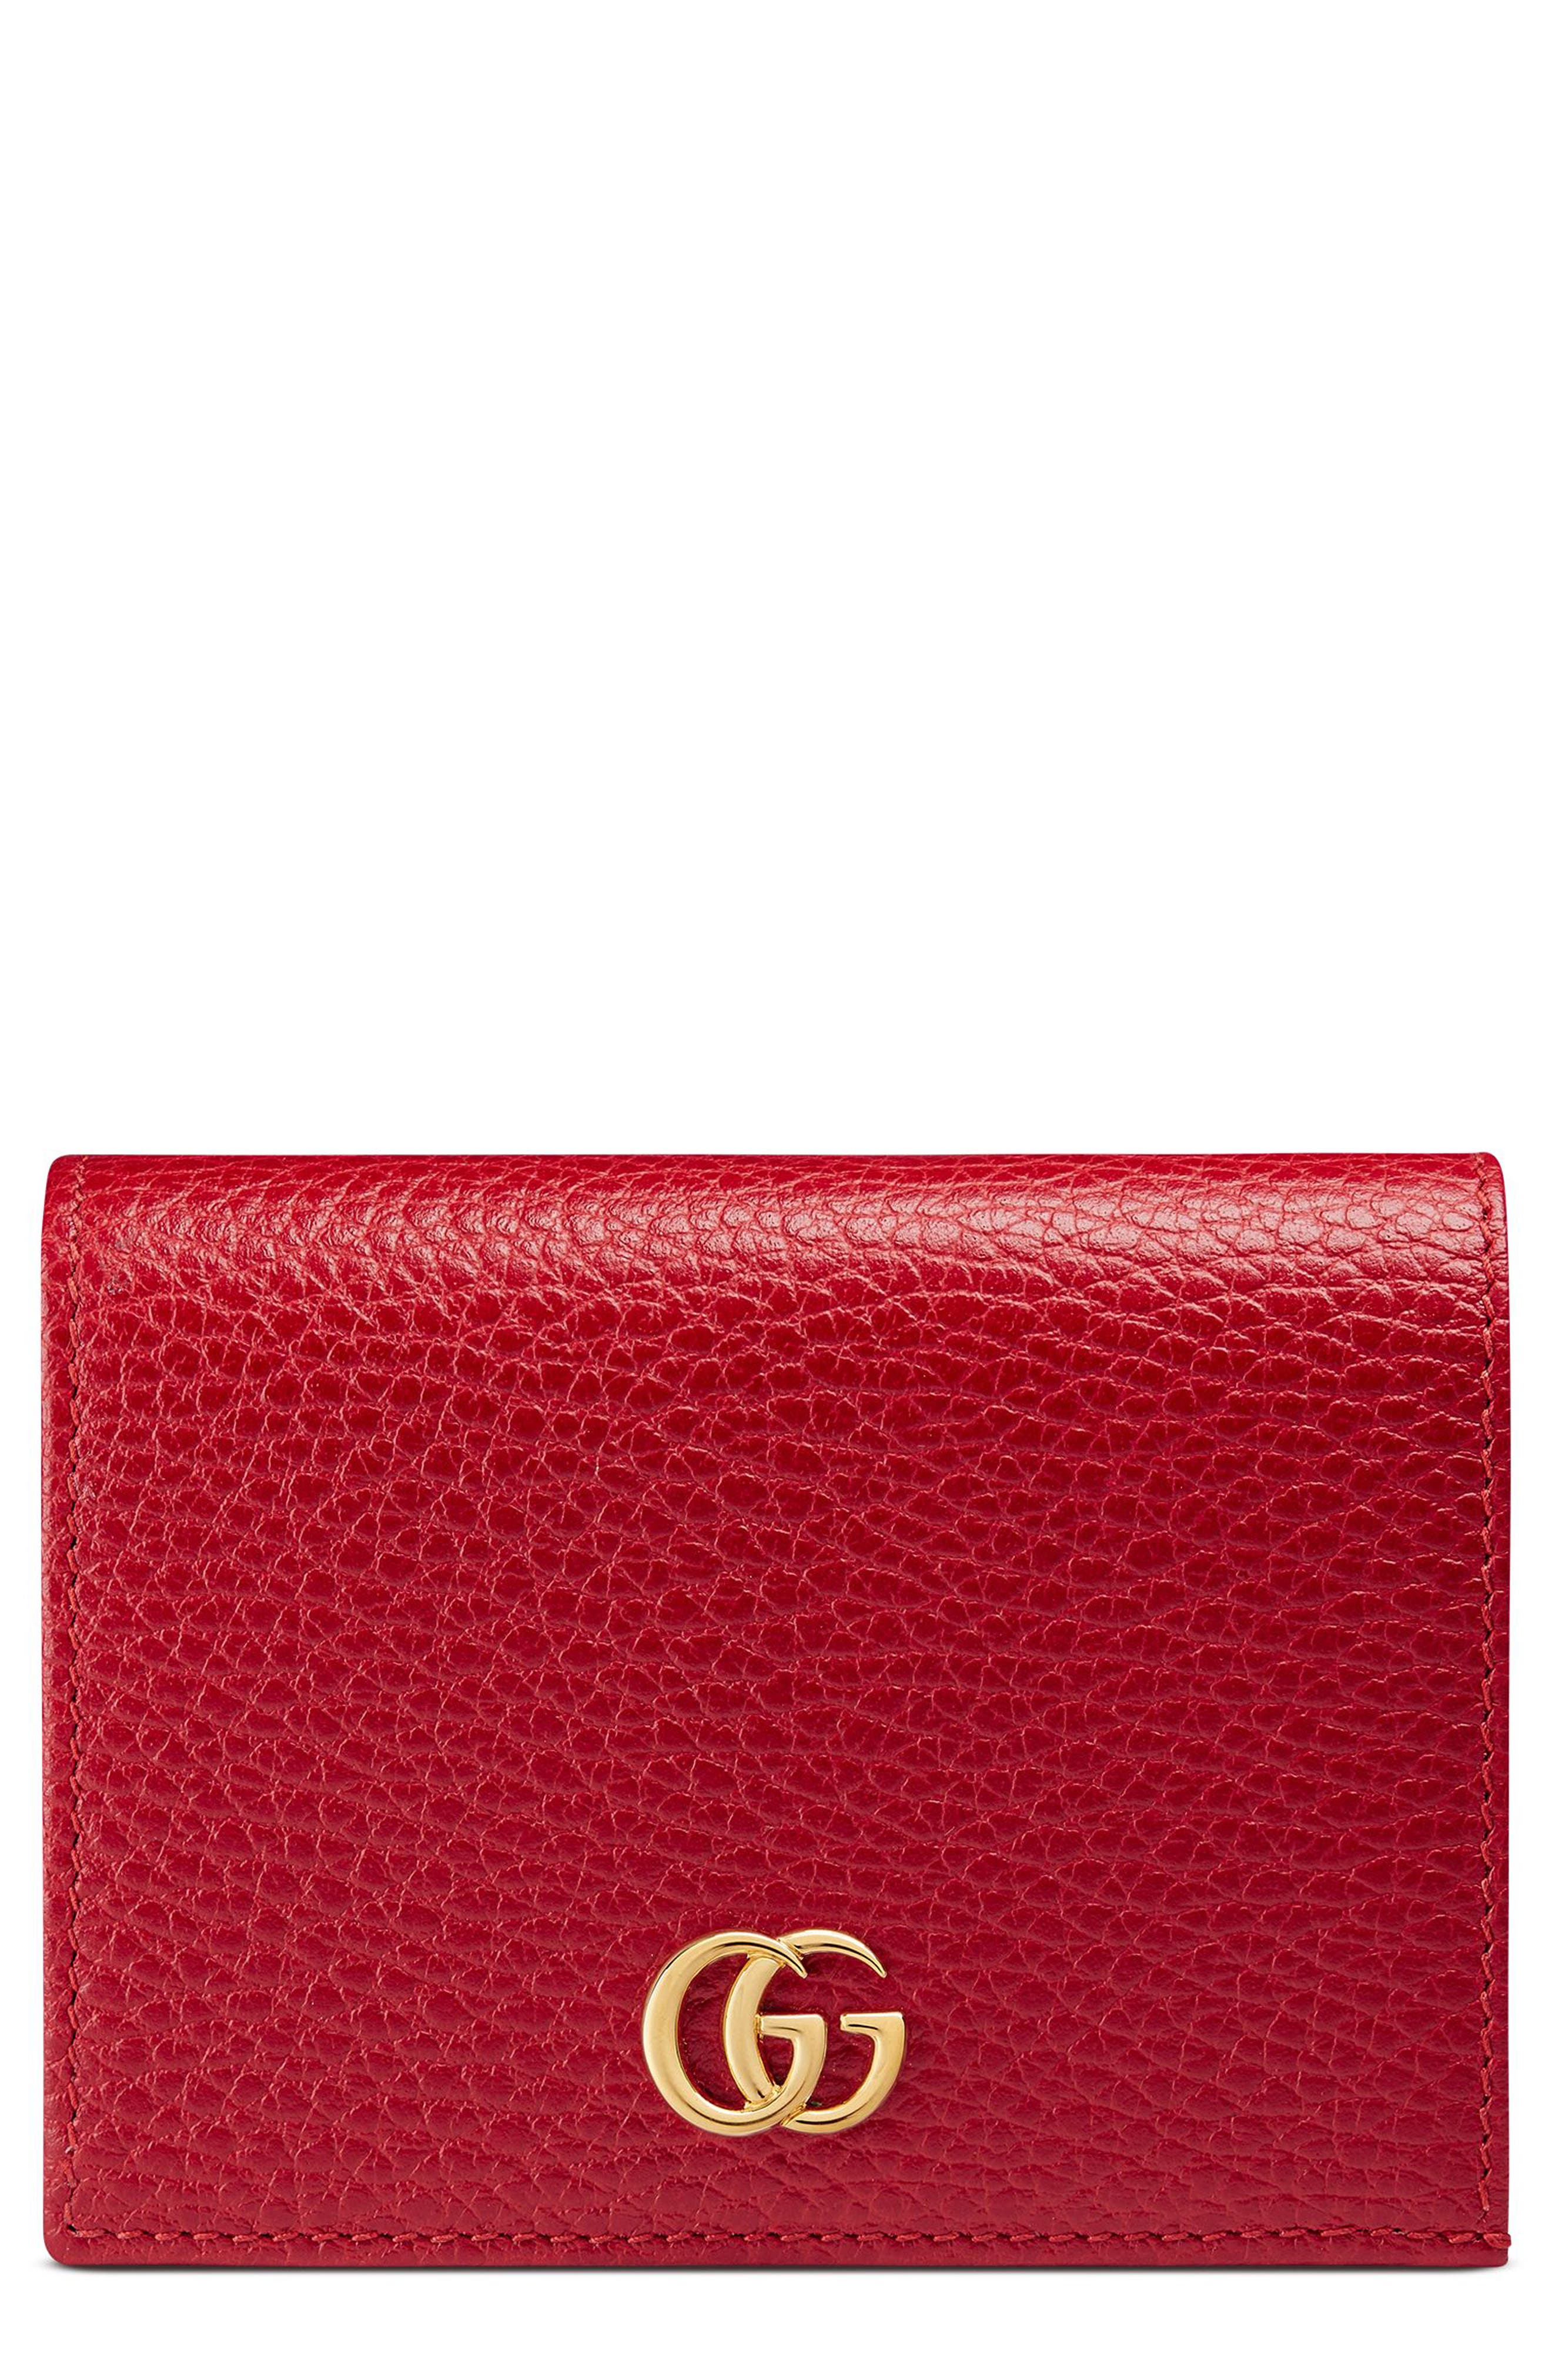 Petite Marmont Leather Card Case,                         Main,                         color, Hibiscus Red